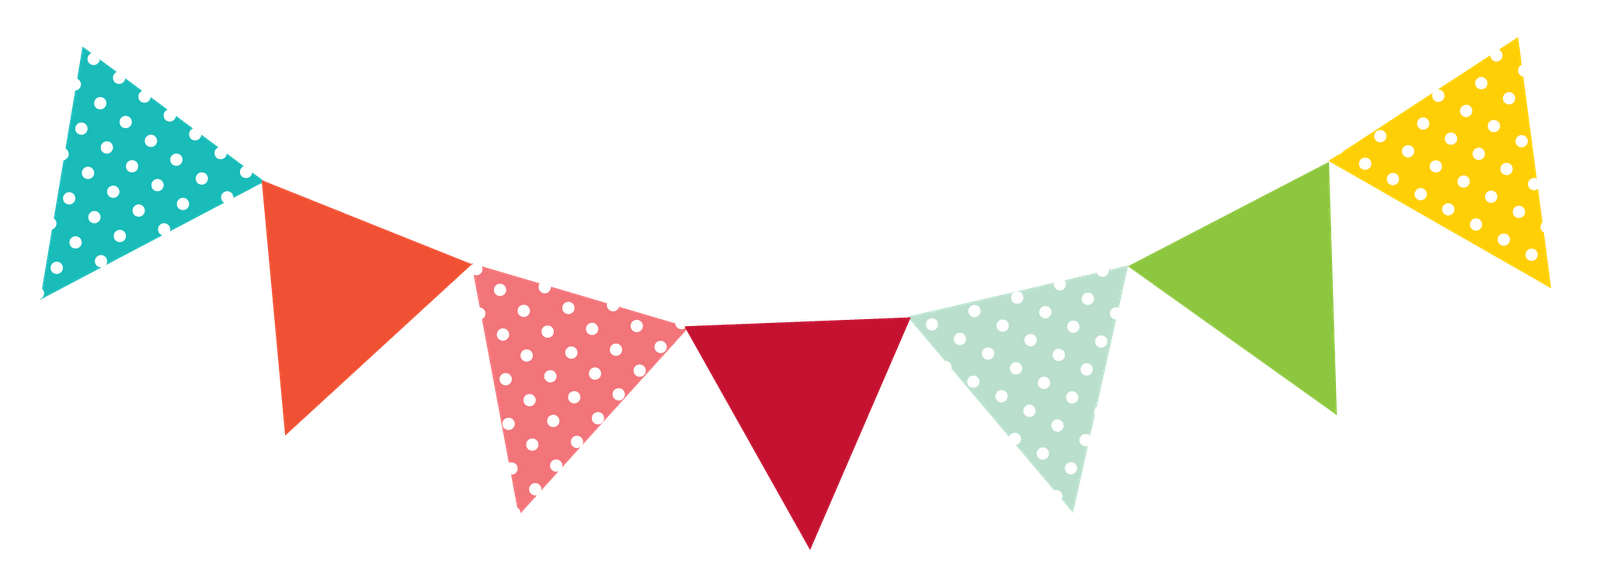 Free Pennant Border Cliparts, Download Free Clip Art, Free.